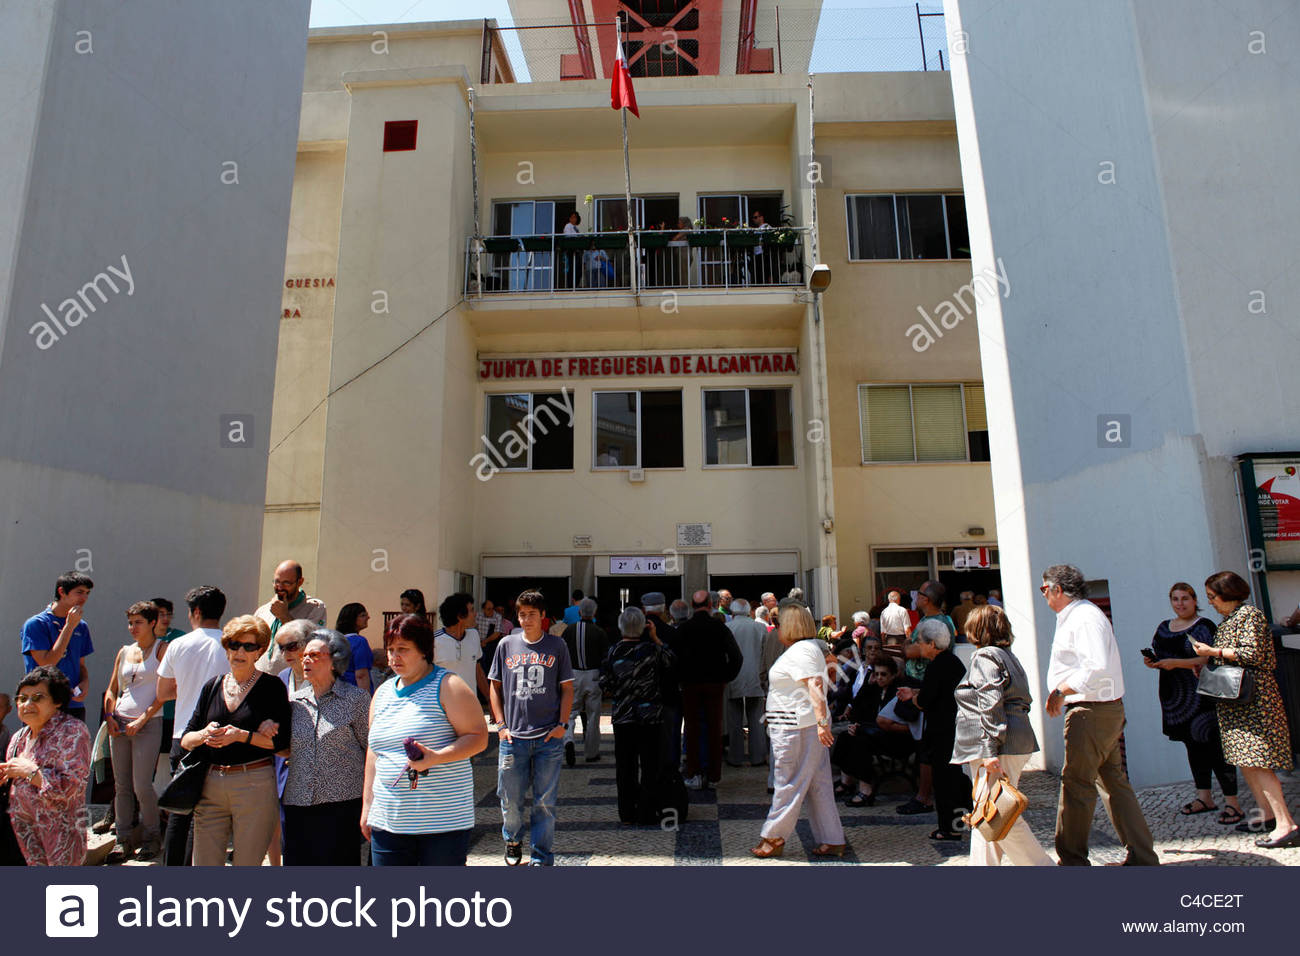 People go to vote in the 2011 General Election in Lisbon, Portugal. - Stock Image